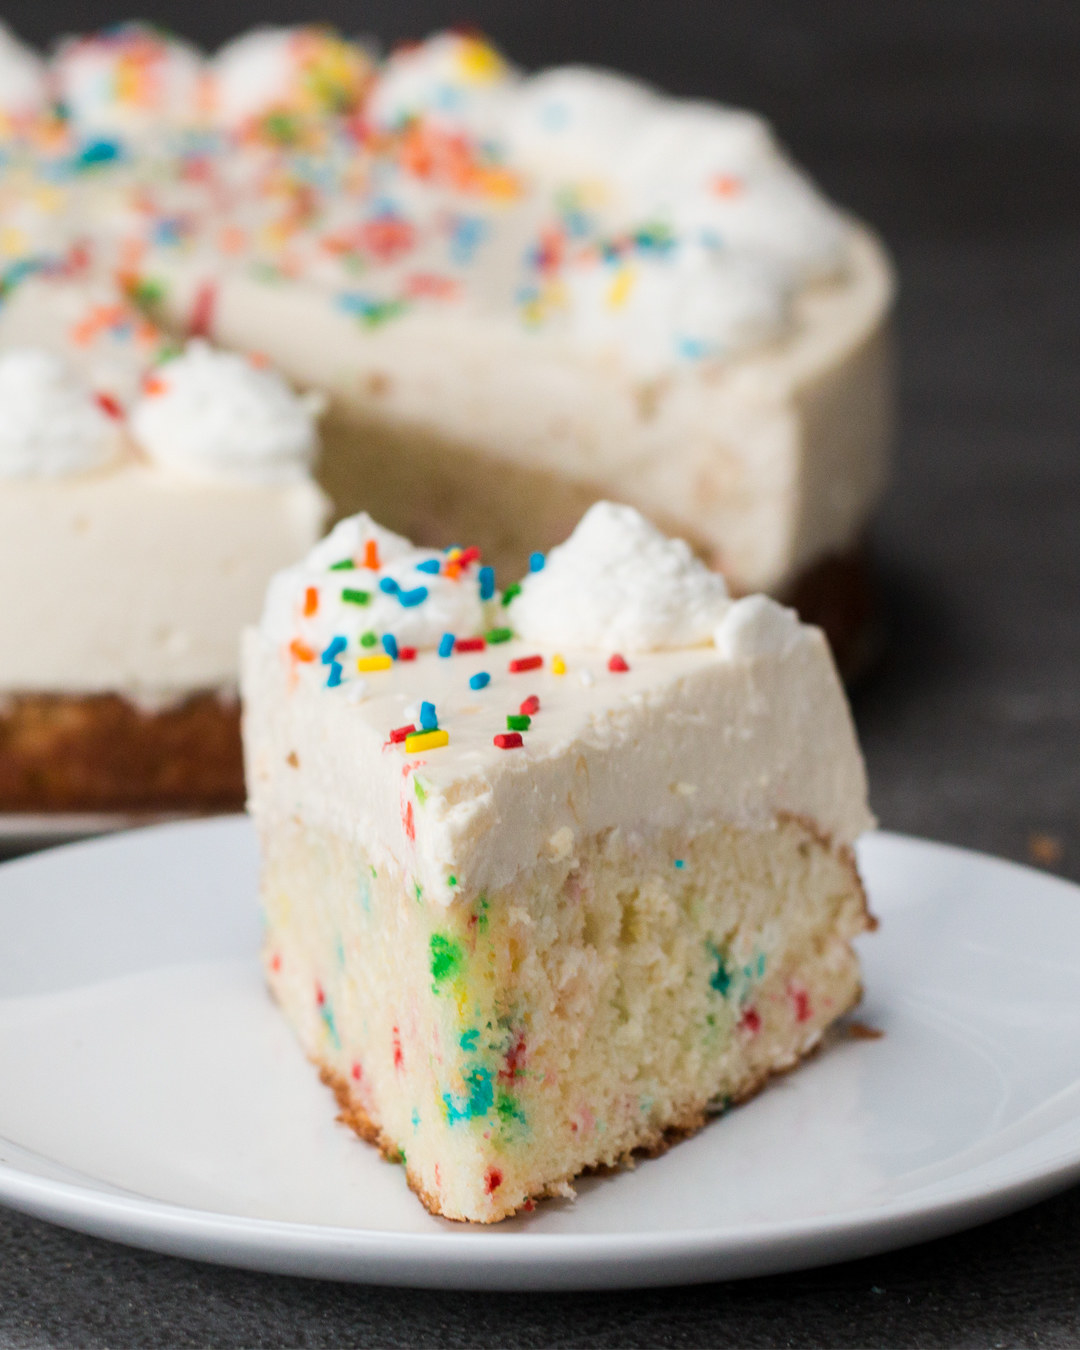 This Birthday Cake Bottom Cheesecake Is The Only Way You Should Eat